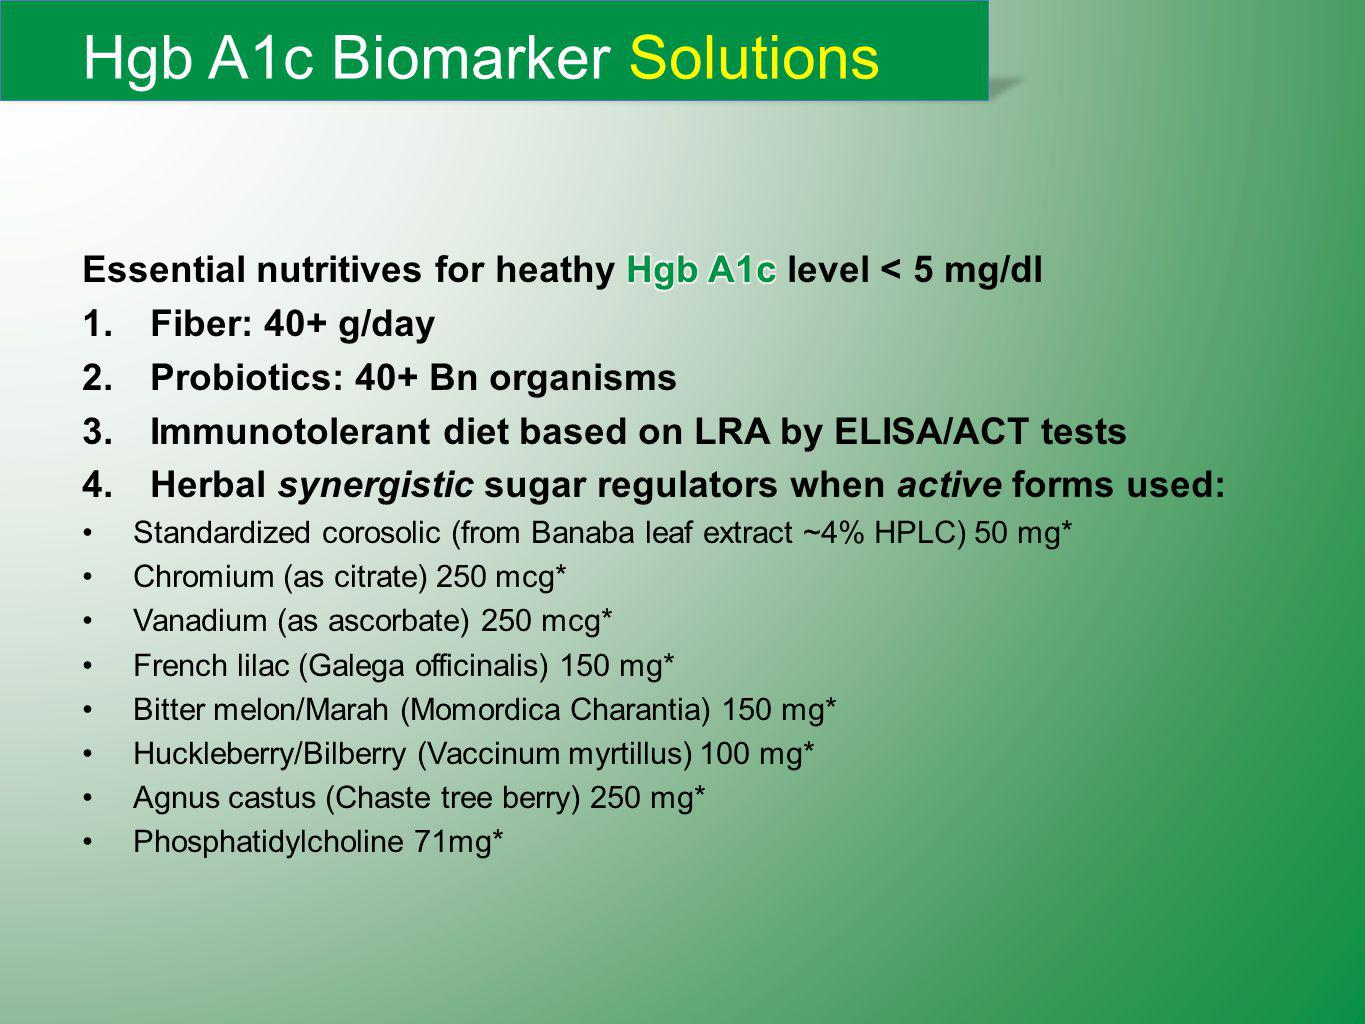 Hgb A1c Biomarker Solutions